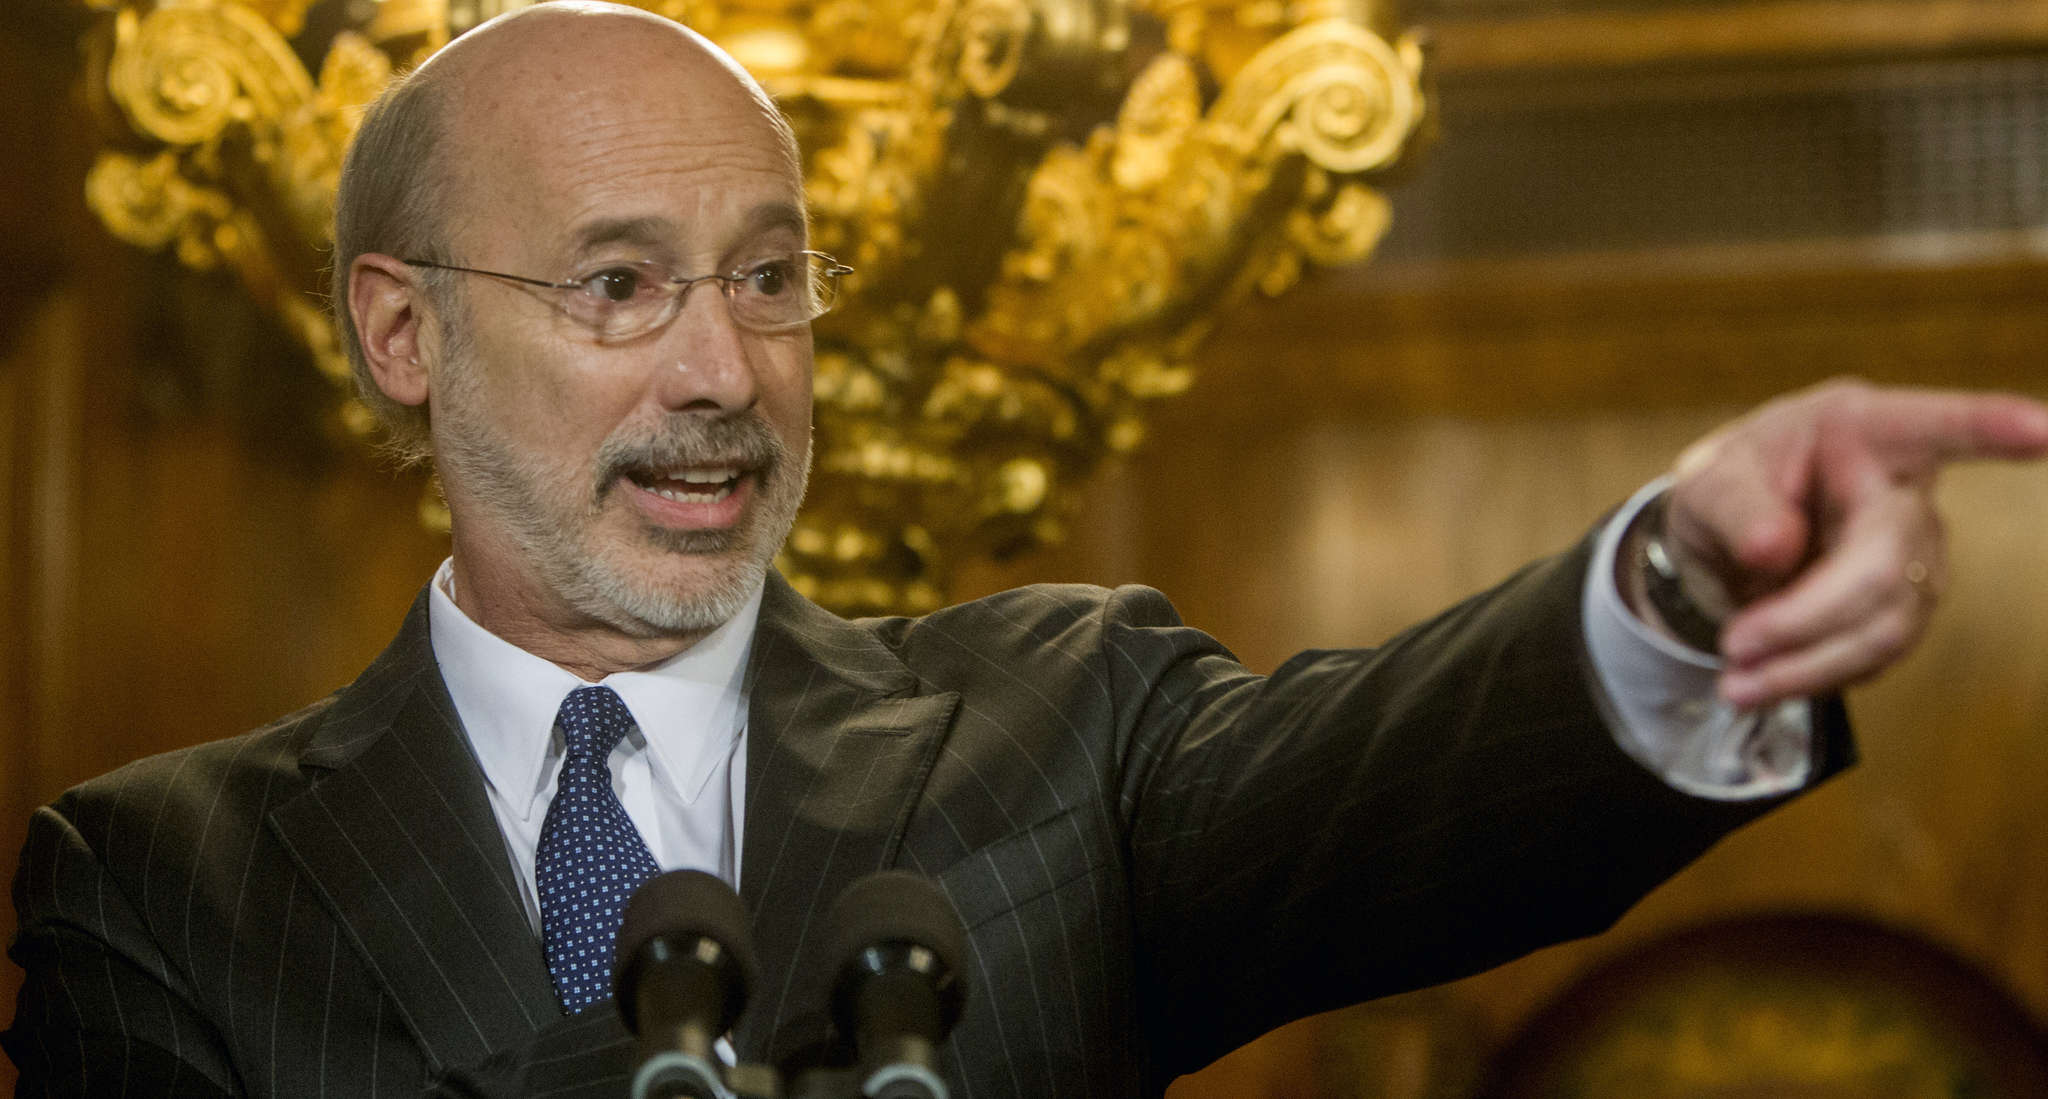 Gov. Wolf could have negotiated with the Legislature on pensions and state stores instead of playing hardball, Baer says.